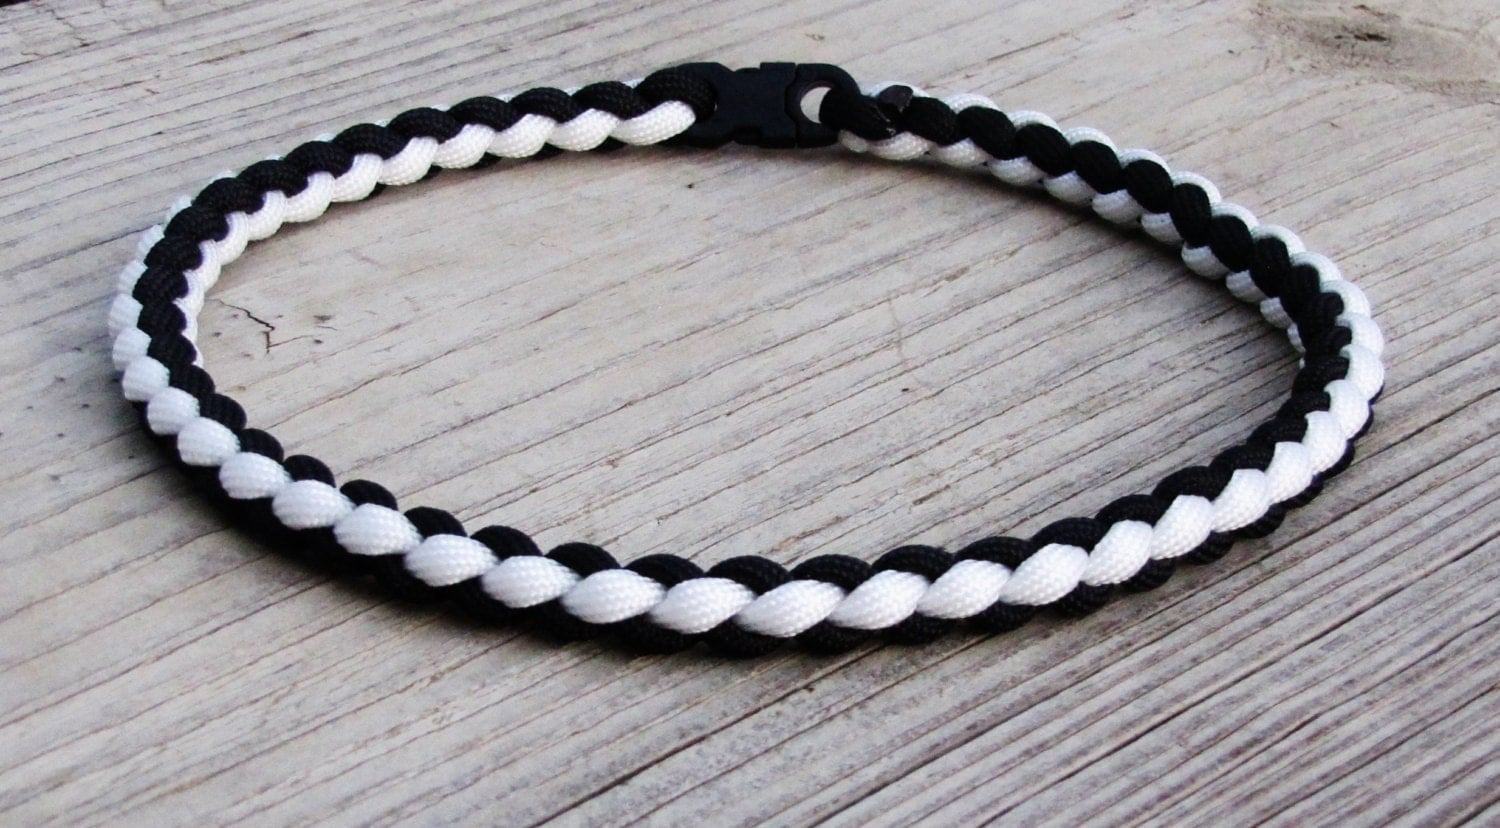 braided paracord sports necklace or by